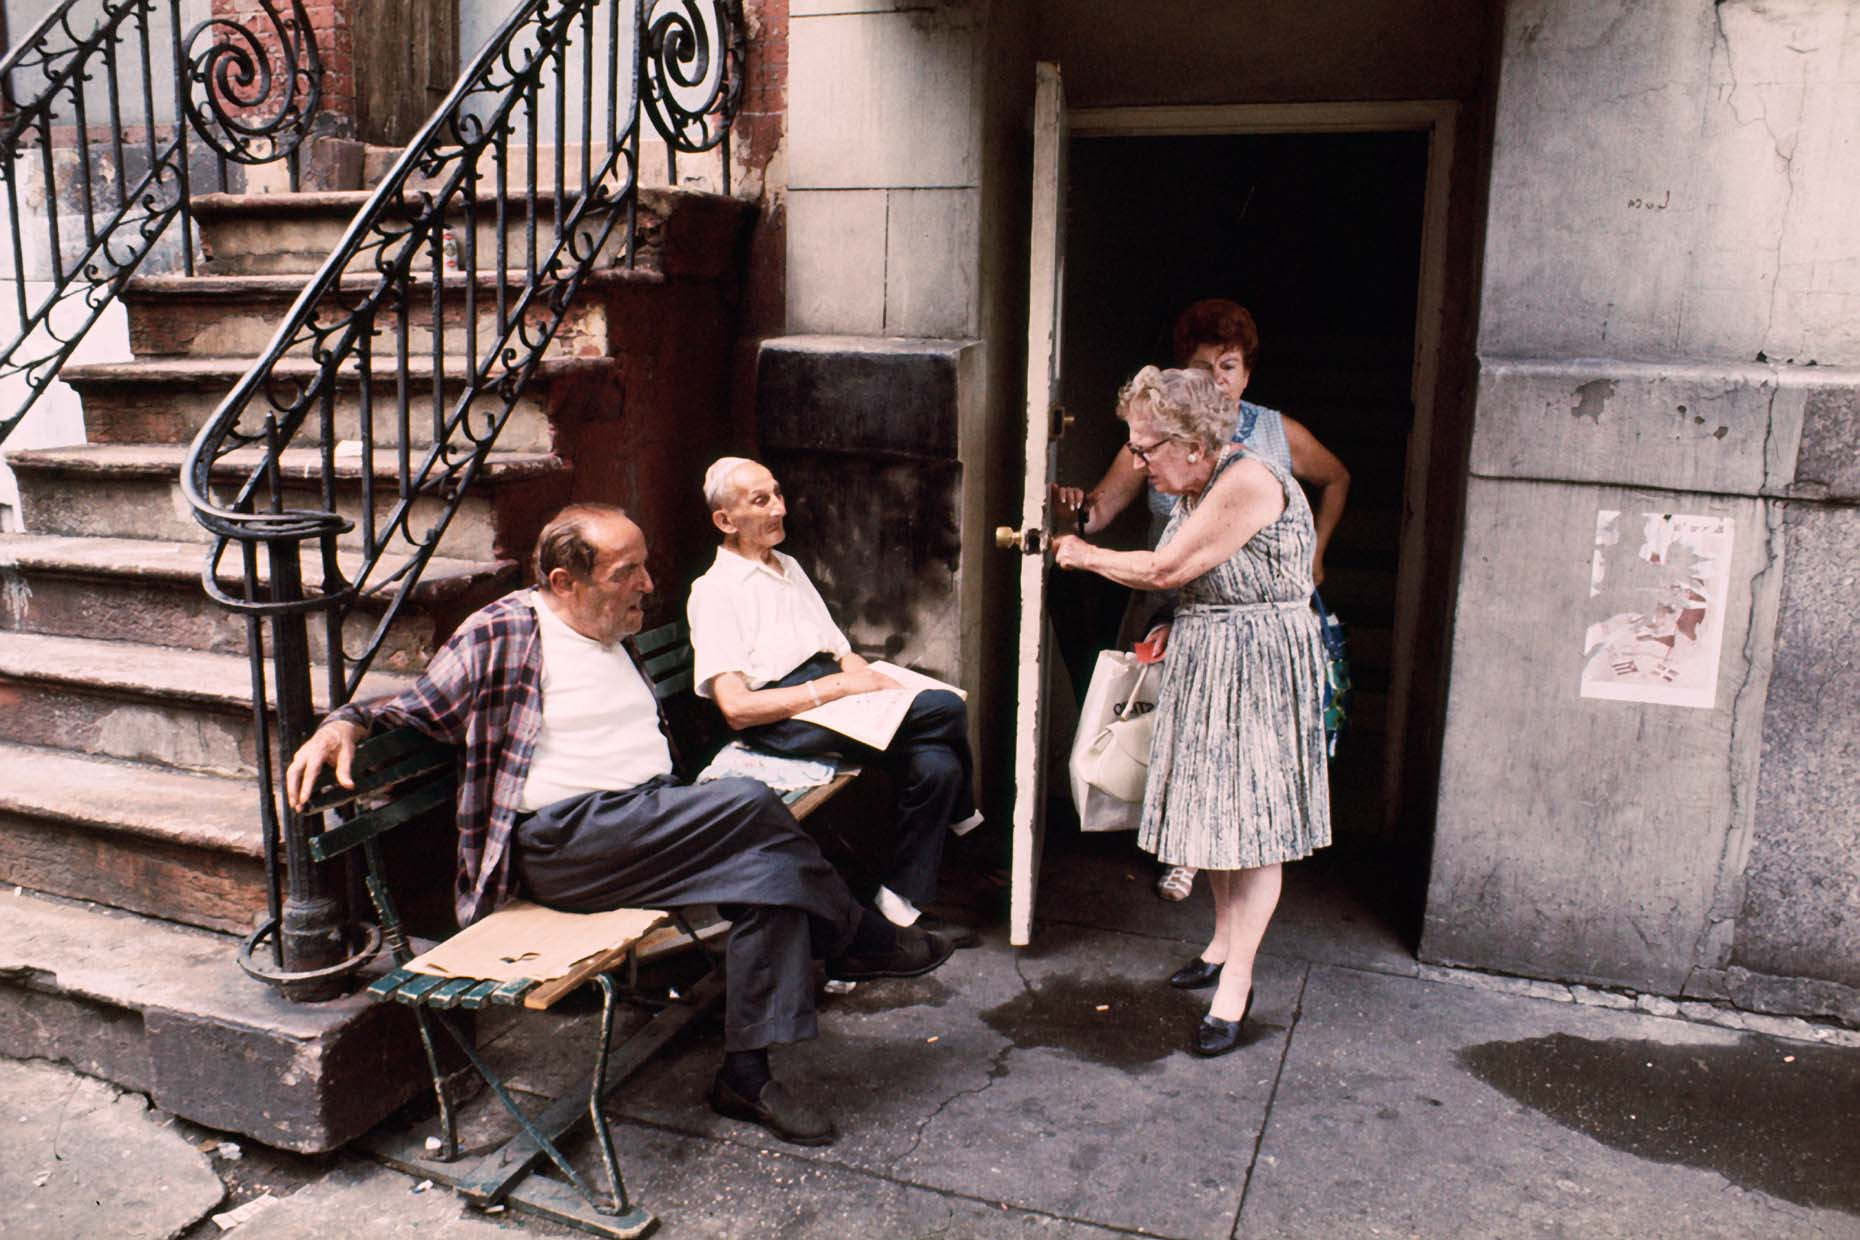 19_Lower East Side, Manhattan, 1970_-DUP3